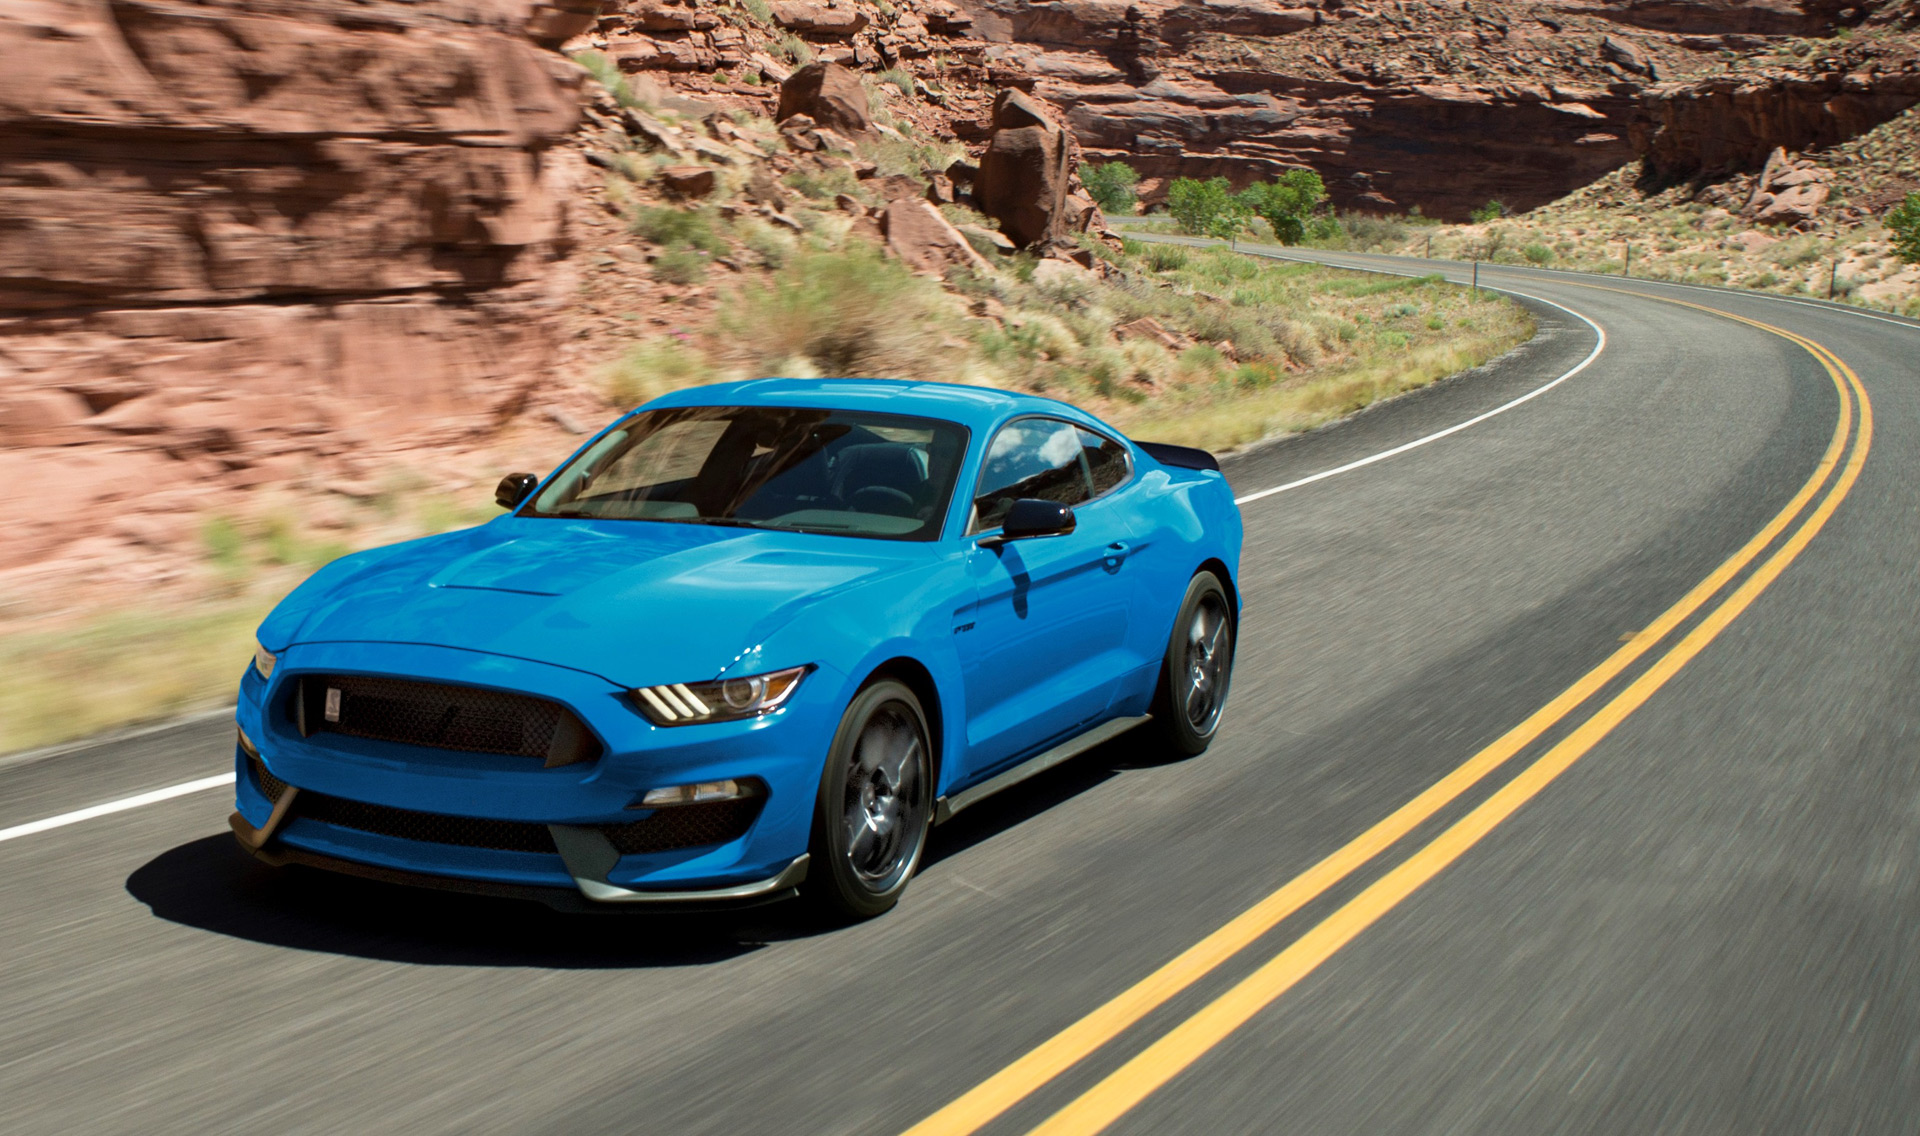 2018 Ford Mustang Shelby Gt350 Keeps Old Looks Gains New